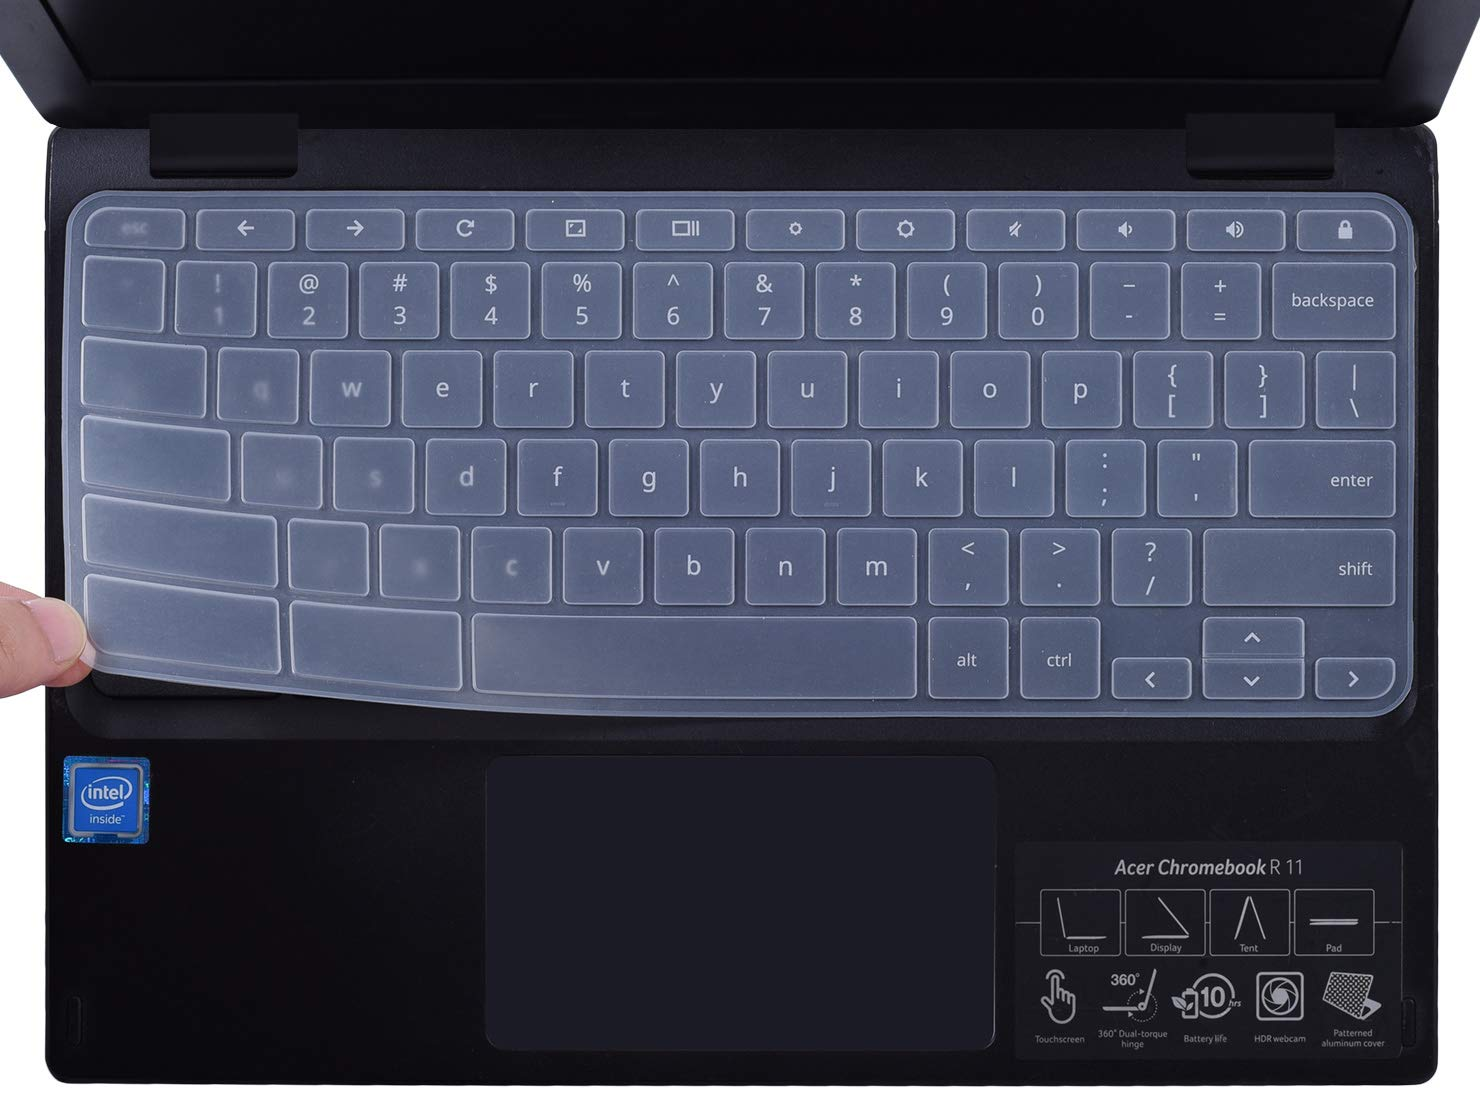 CaseBuy Keyboard Skin Cover Compatible 2018/2017 Chromebook R 11 Convertible CB5-132T / Chromebook 11 CB3-131 CB3-132 / Acer Chromebook R 13 CB5-312T Chromebook (Clear)